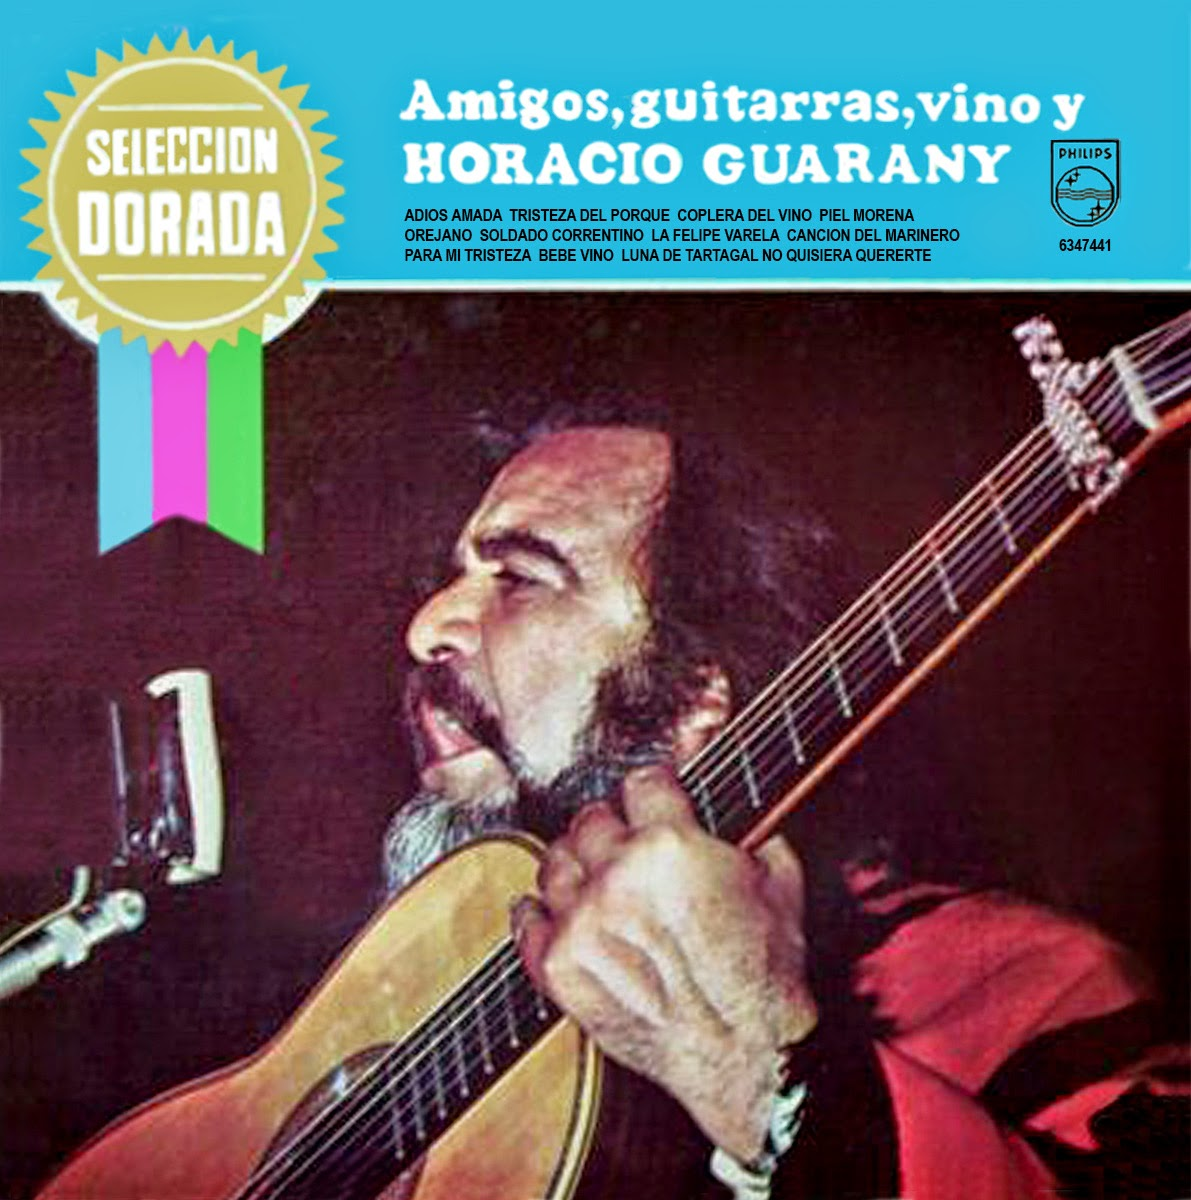 amigos hORACIO GUARANY TAPA